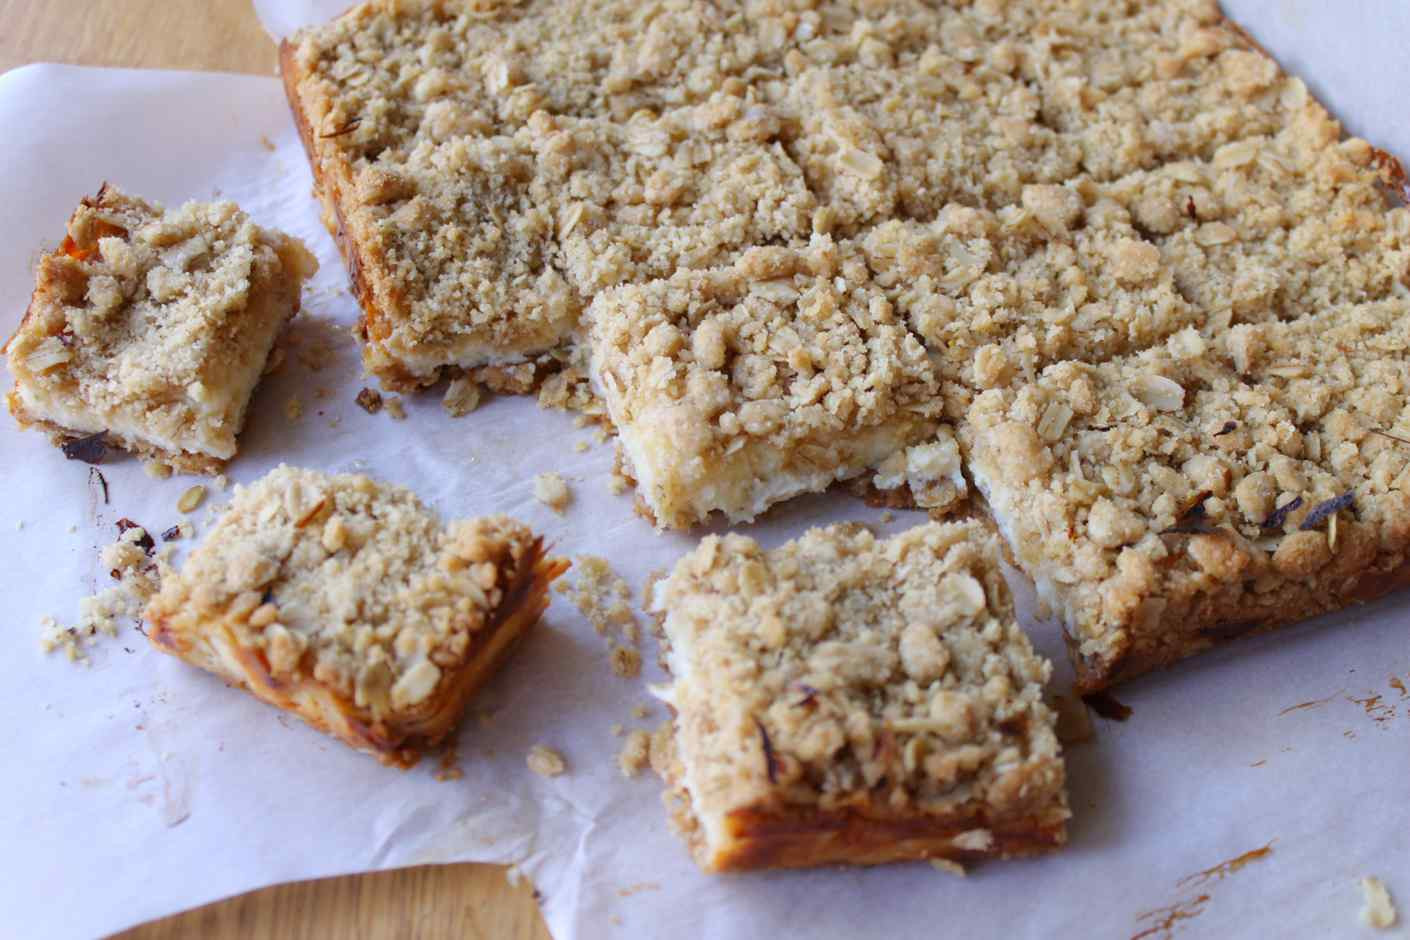 Oatmeal Dessert Recipe  creamy lime oatmeal bars recipe story of a kitchen